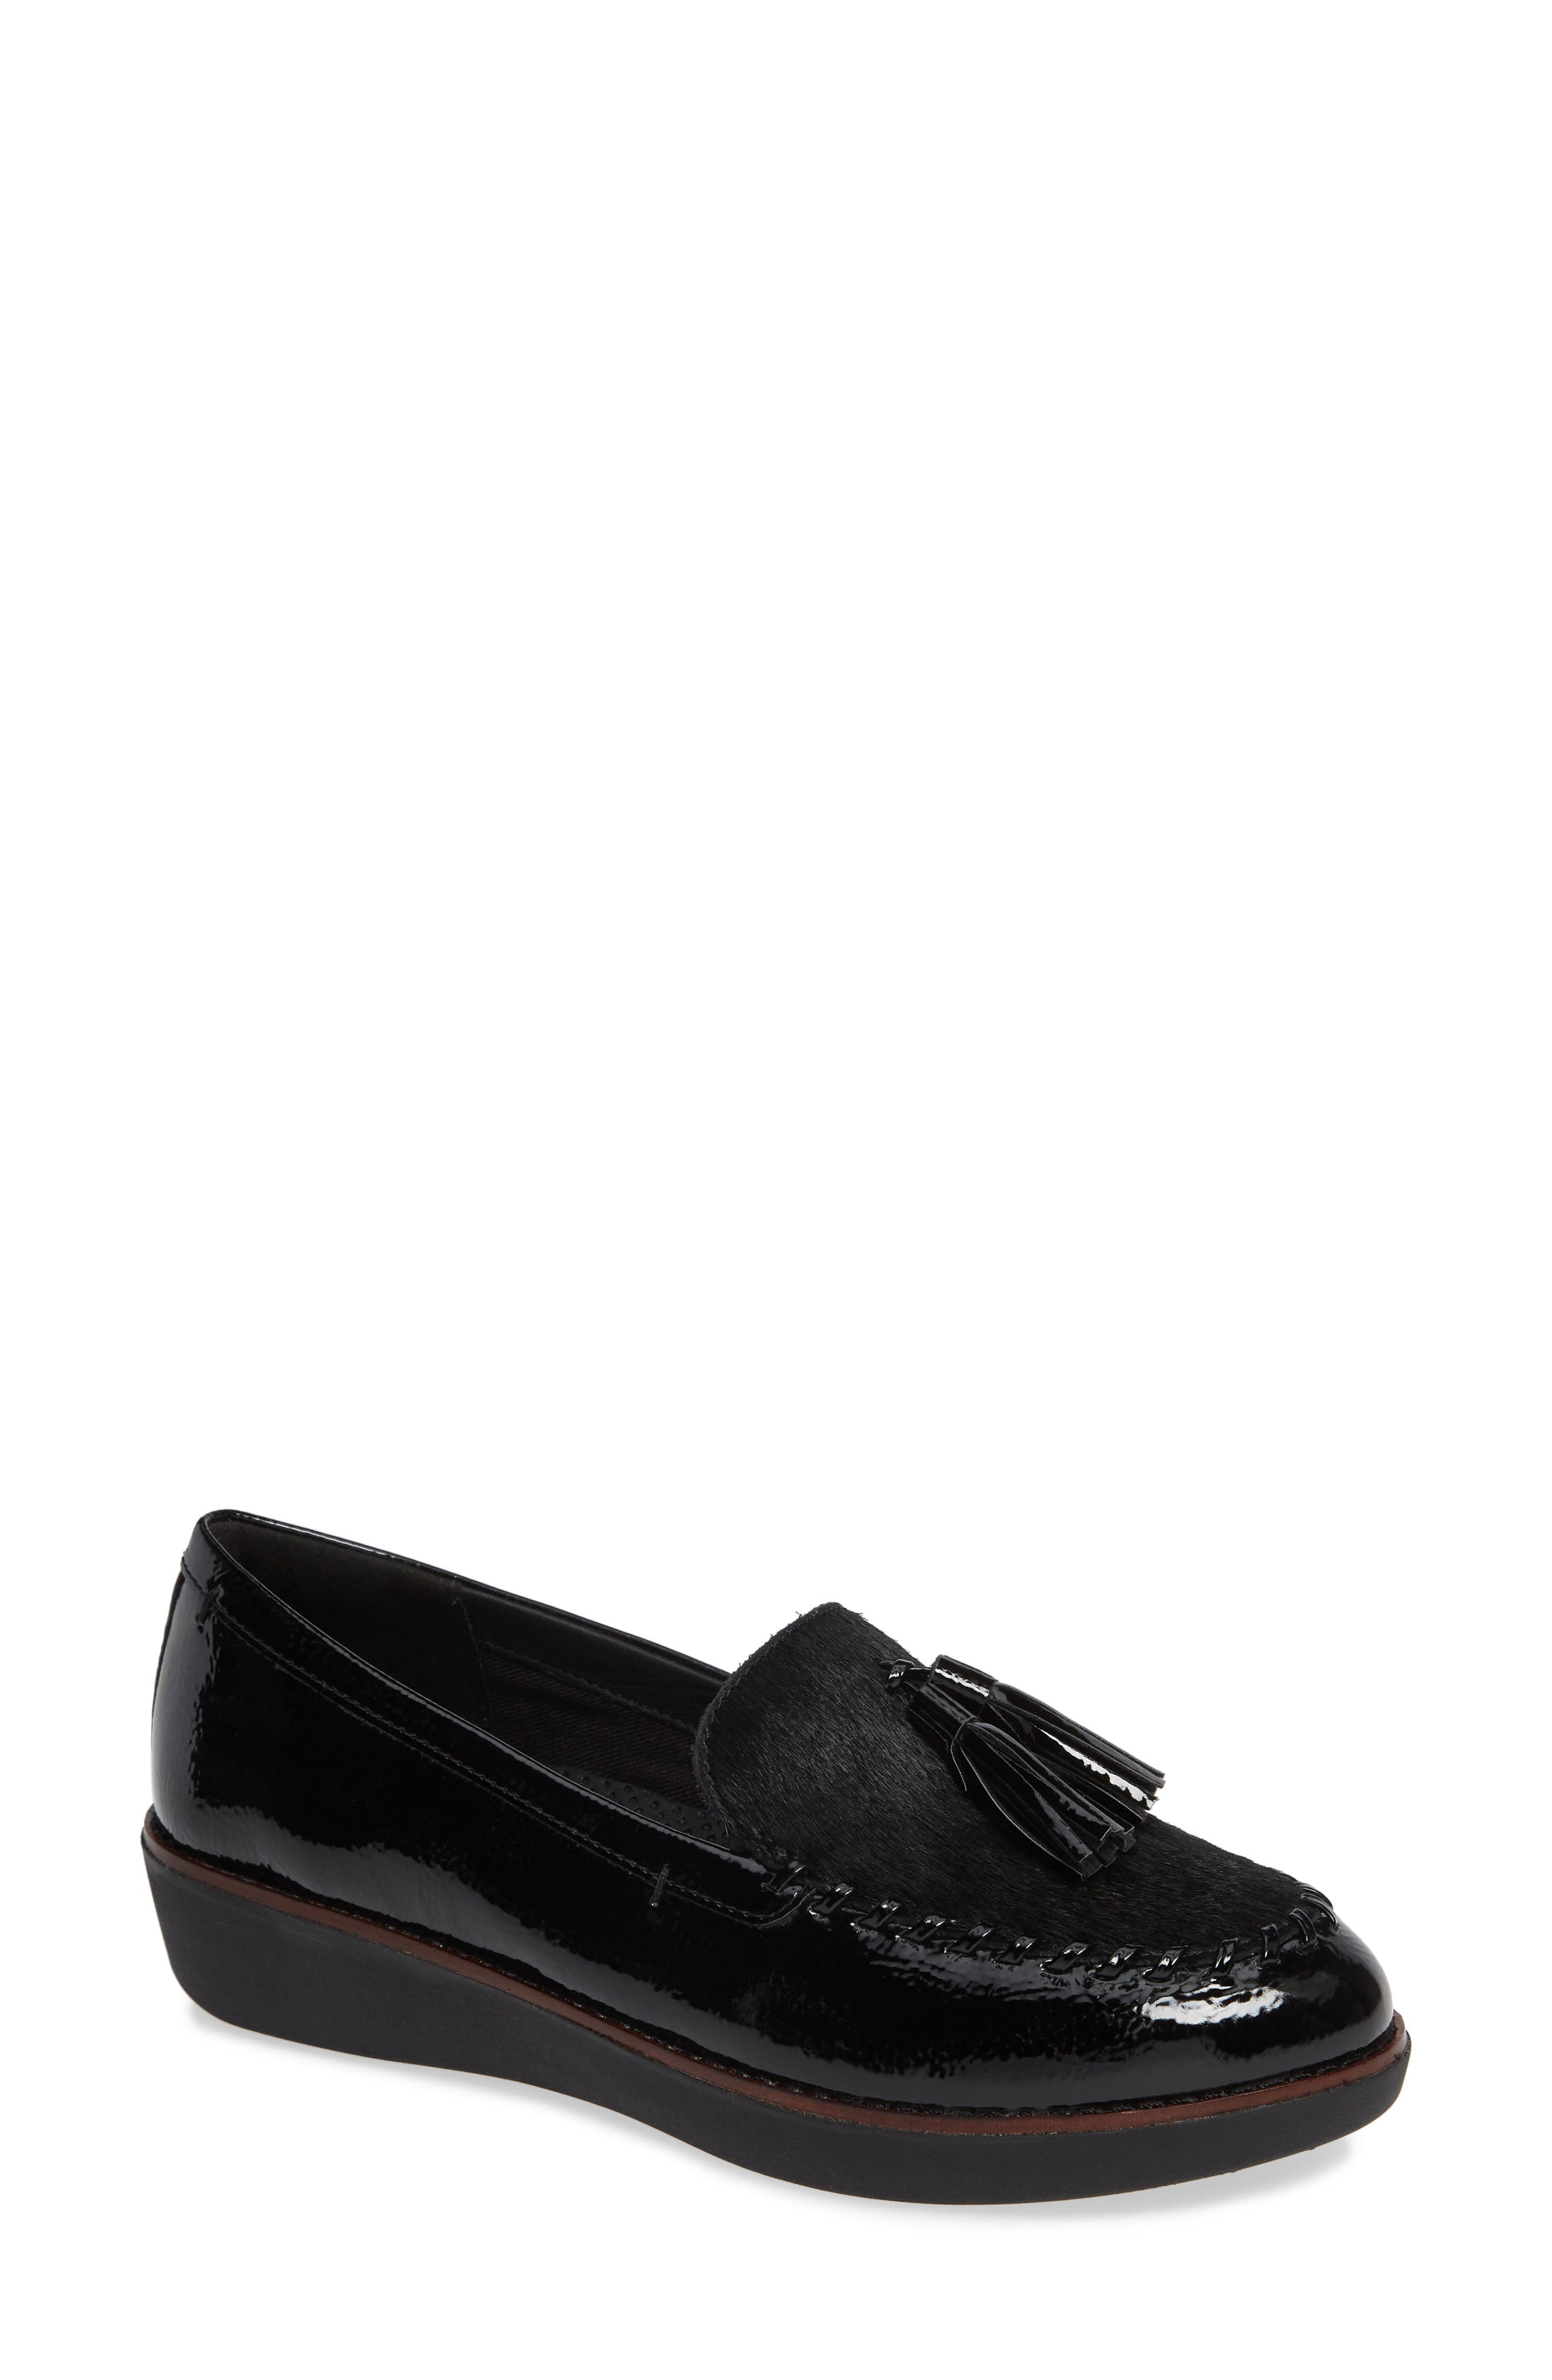 Petrina Genuine Calf Hair Loafer,                             Main thumbnail 1, color,                             BLACK FAUX LEATHER